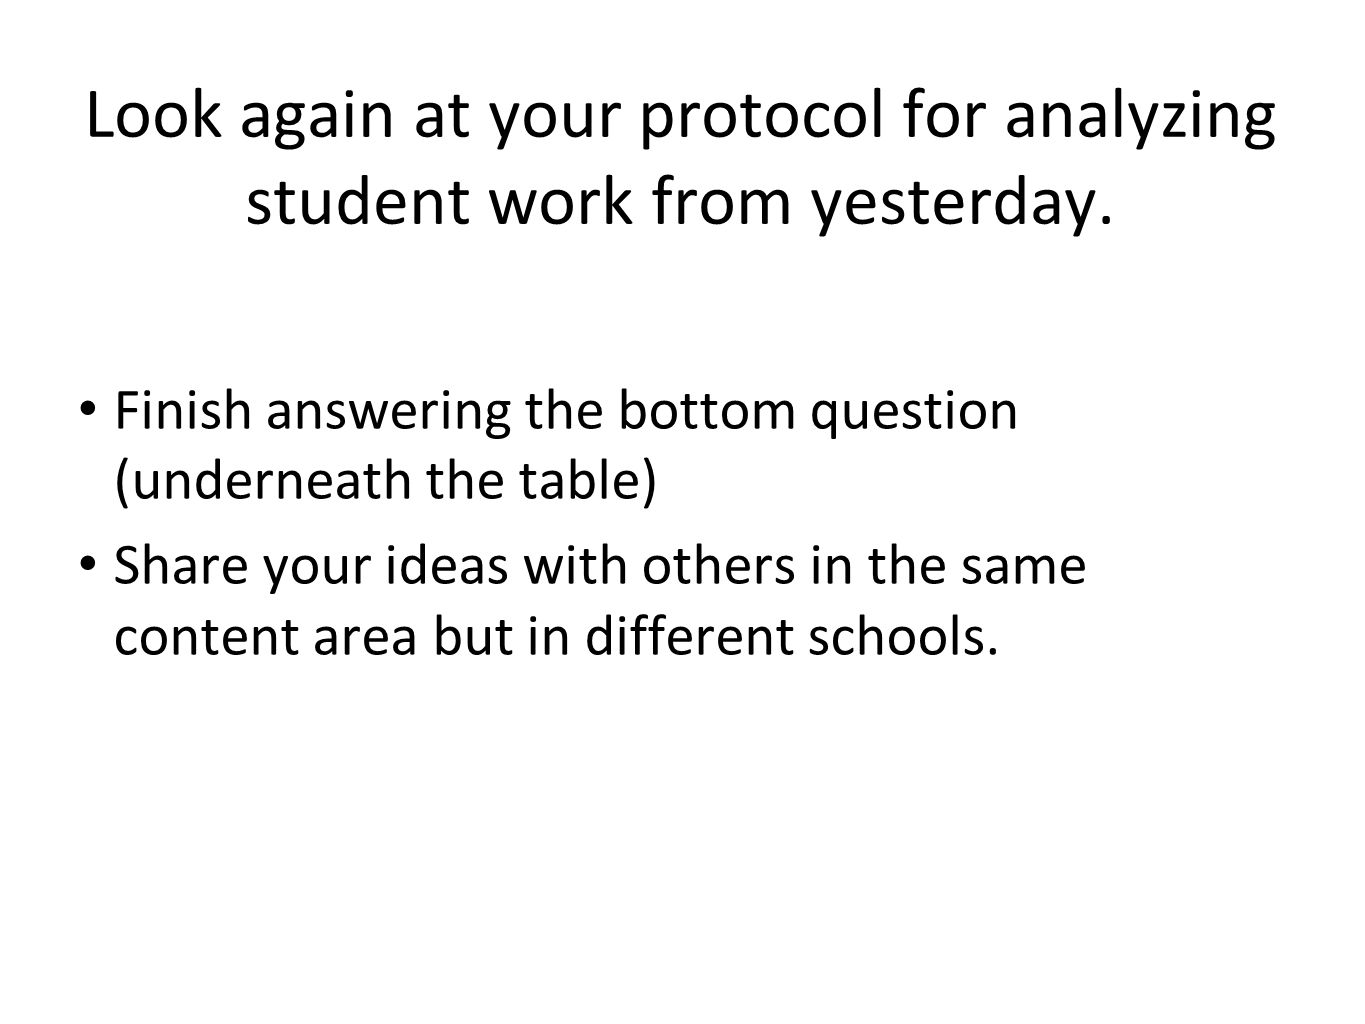 Look again at your protocol for analyzing student work from yesterday.